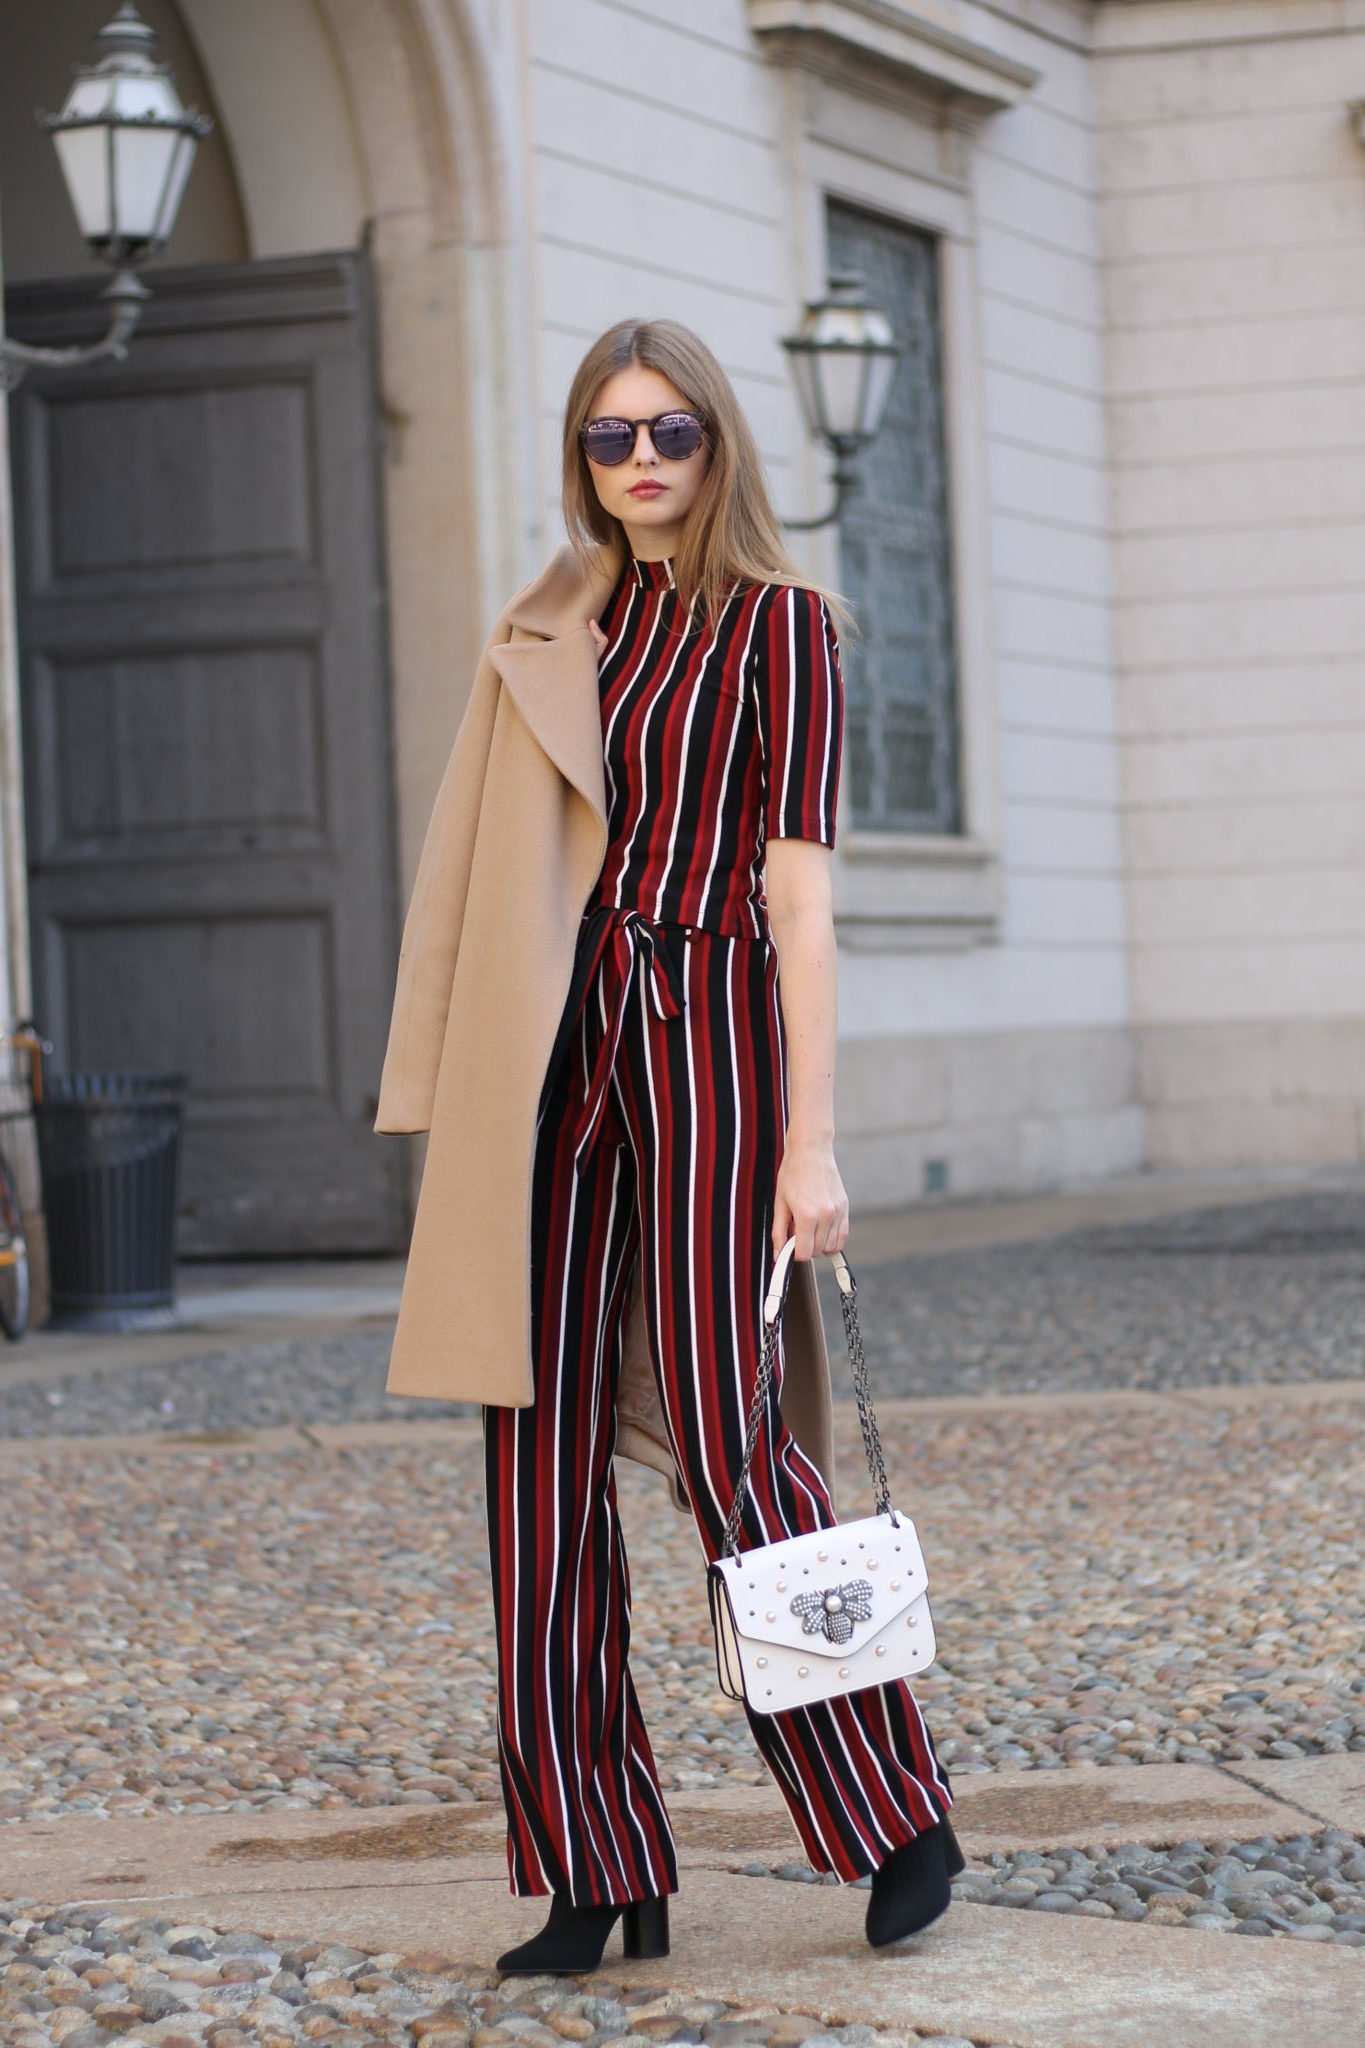 IMG 1613 e1519241604186 - BOLD STRIPED JUMPSUIT I MILAN